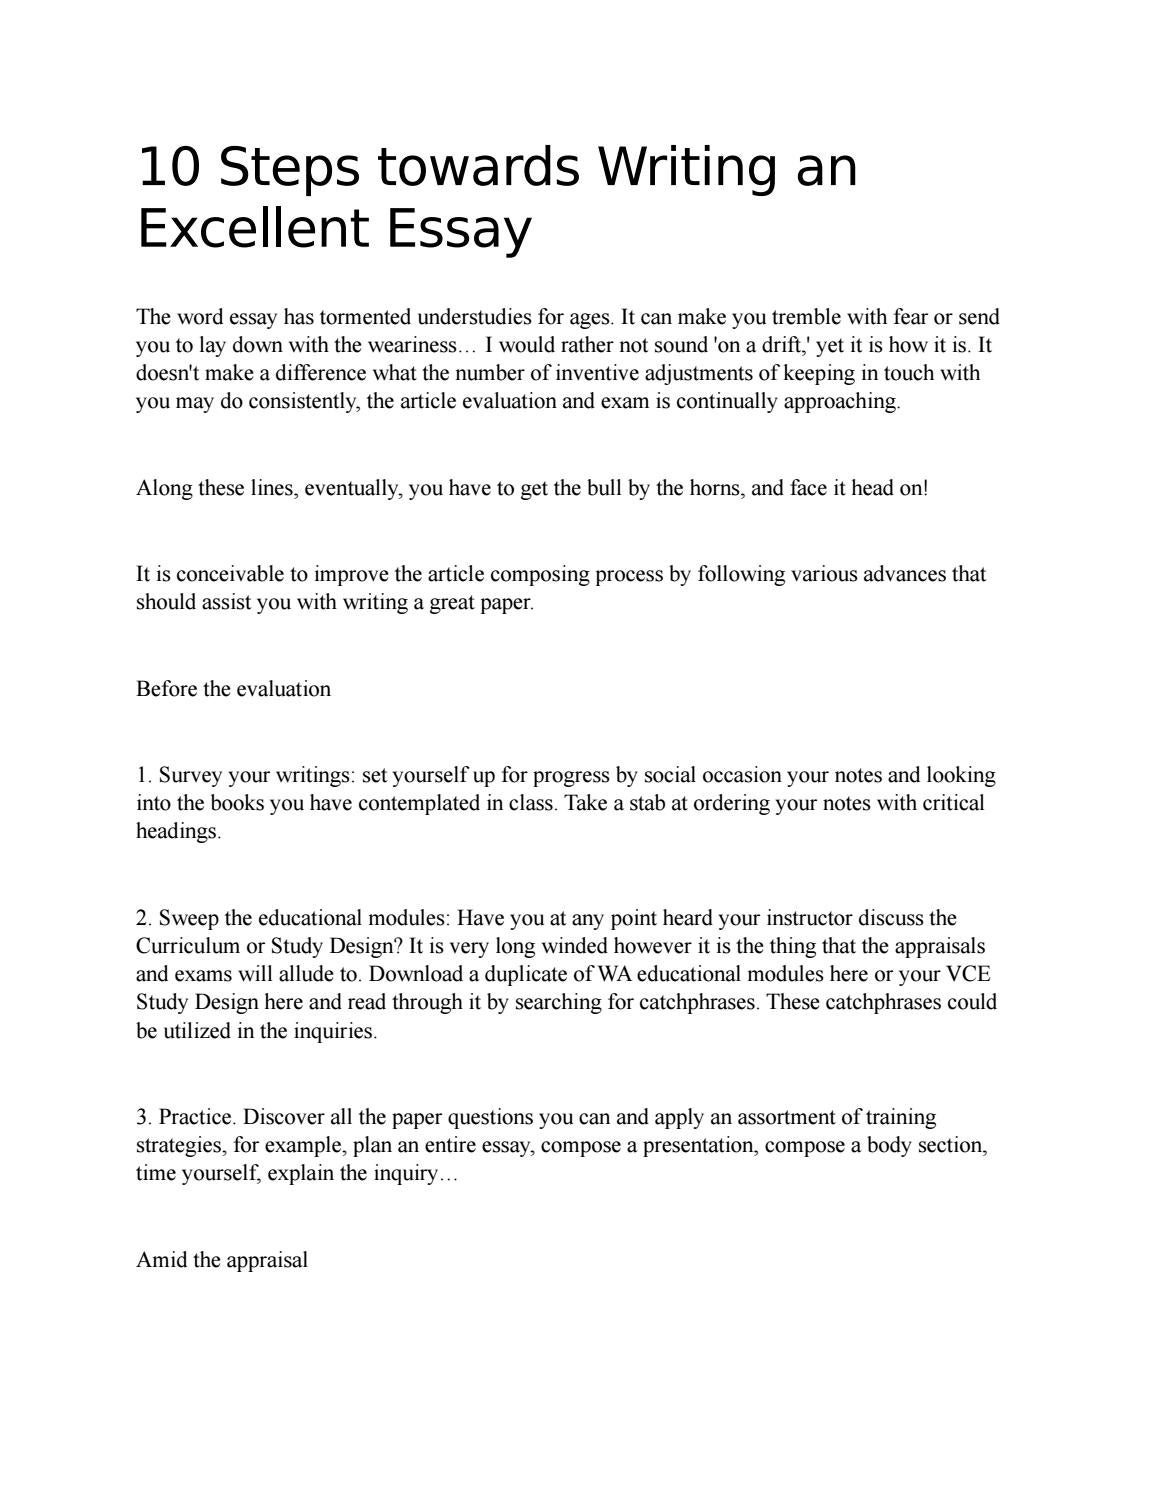 Steps Towards Writing An Excellent Essay By Elenasmith  Issuu